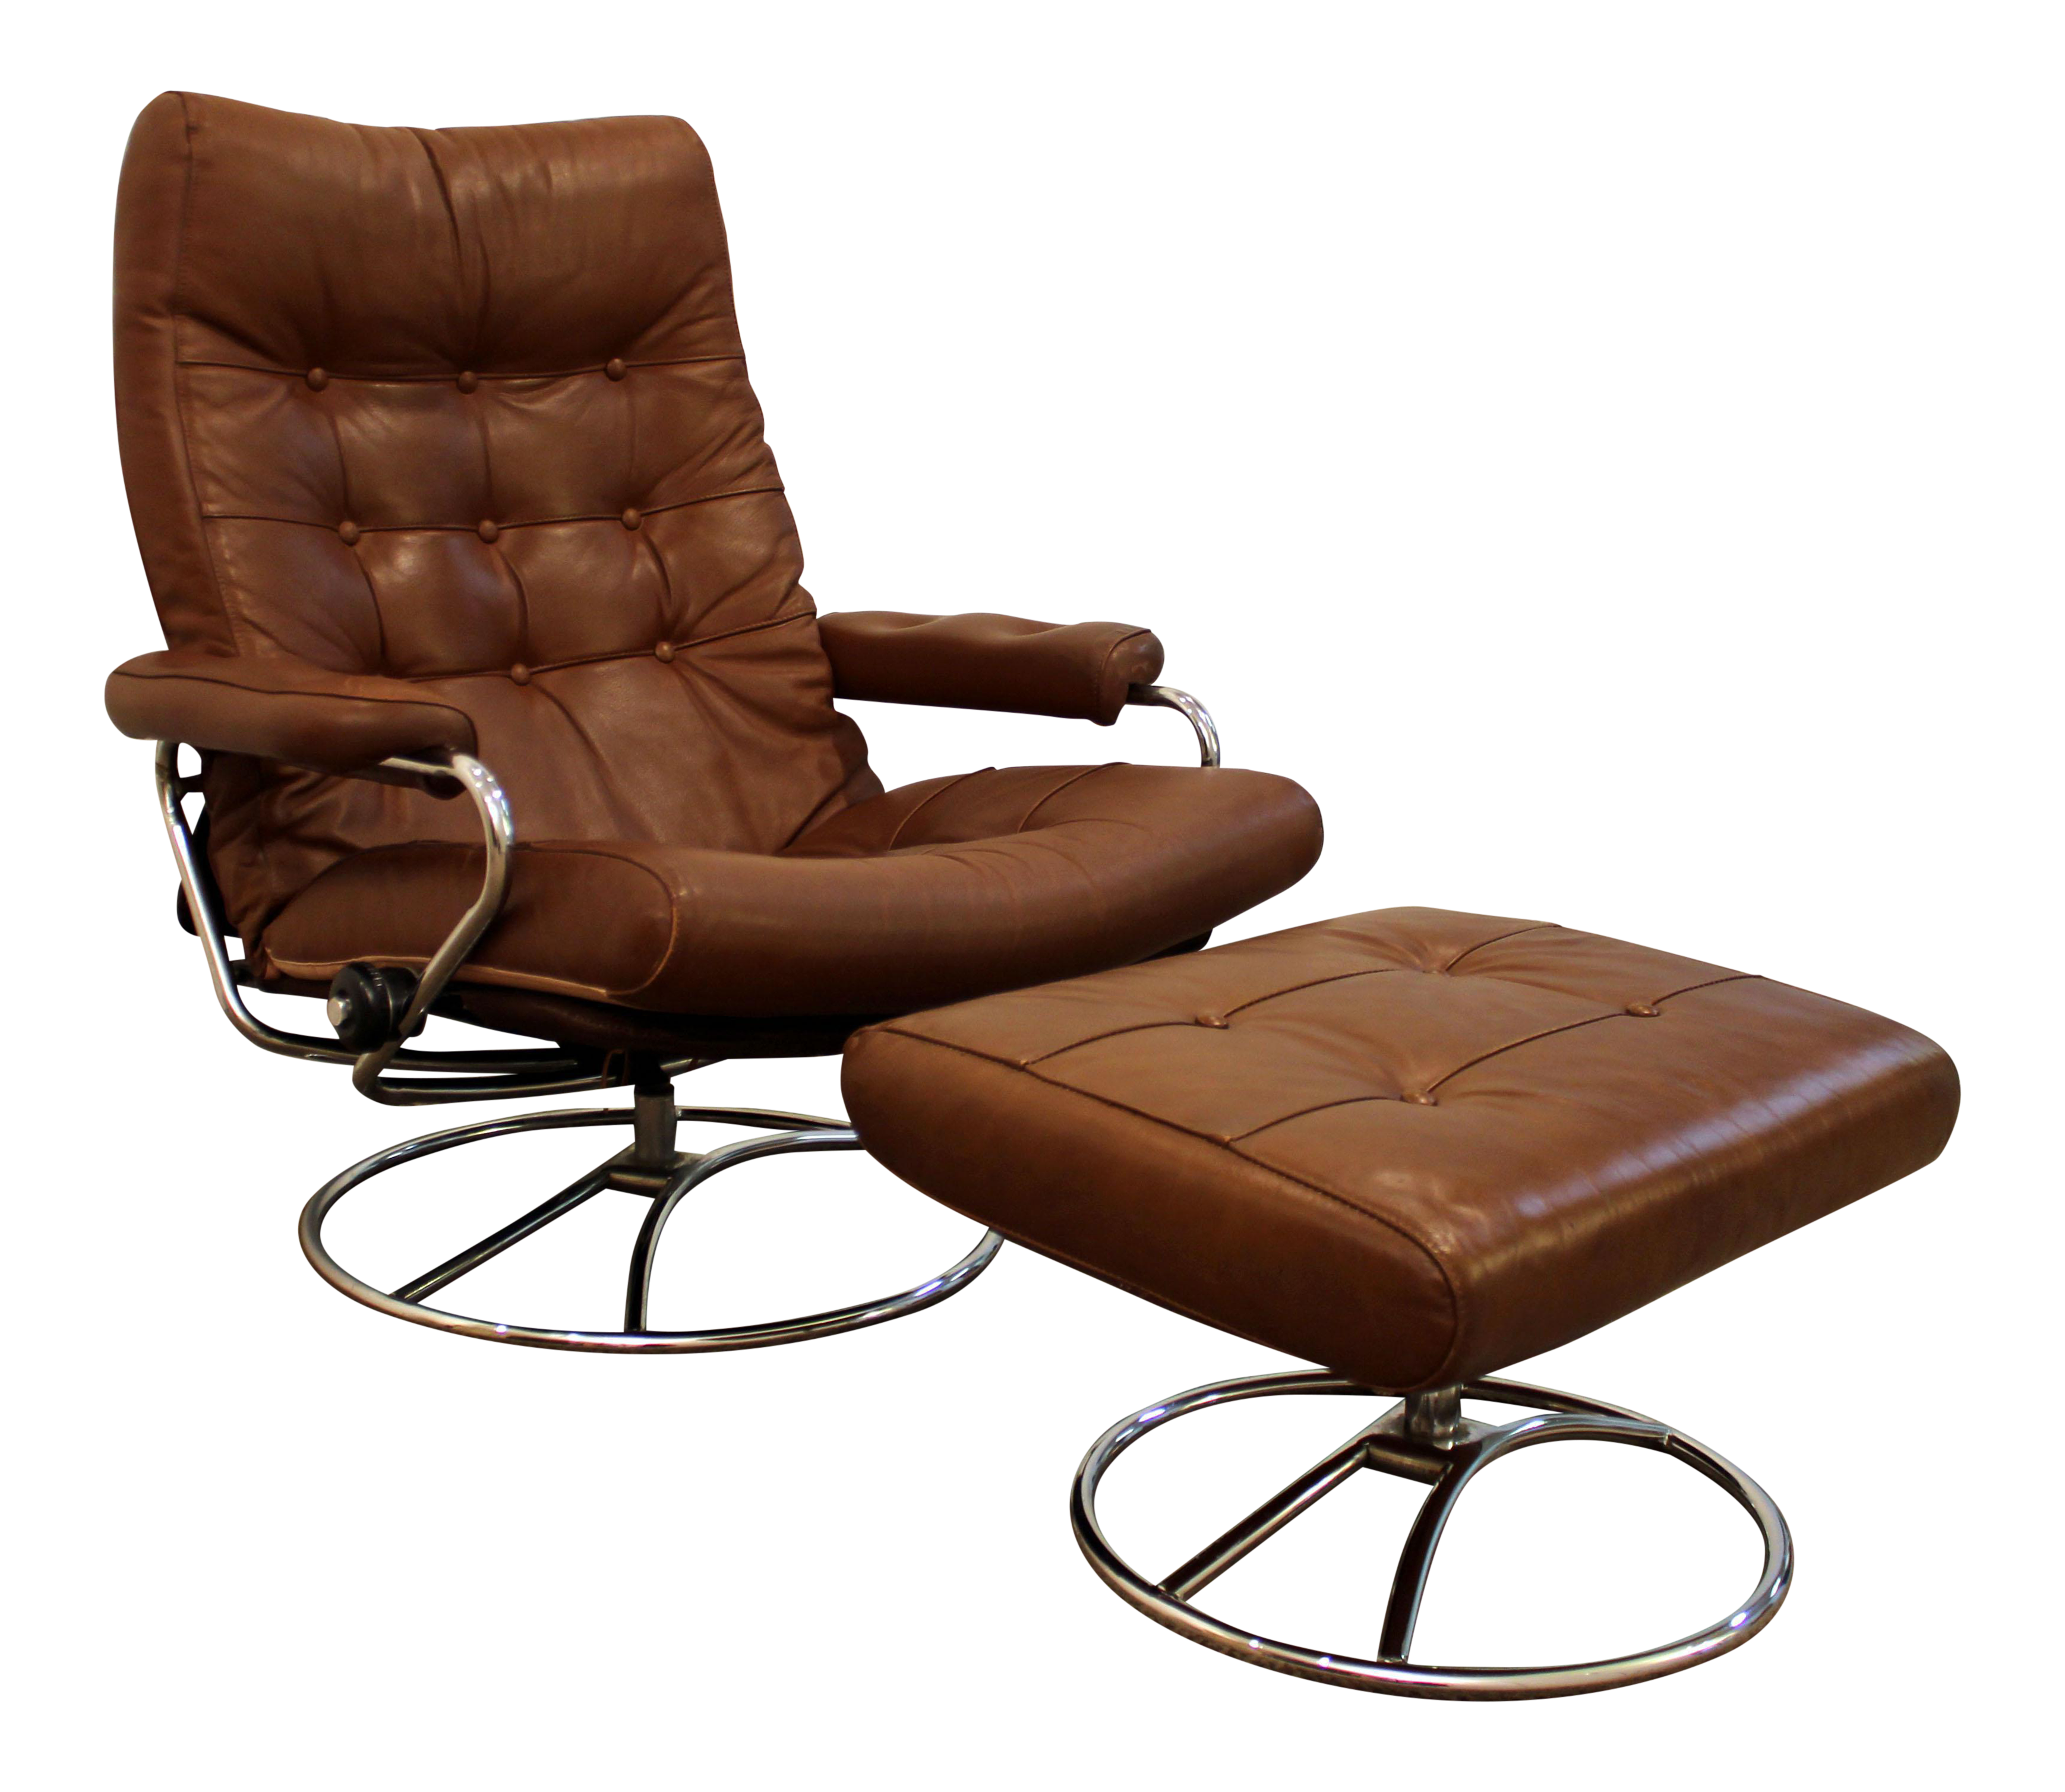 Lovely Mid Century Danish Modern Ekornes Stressless Recliner Lounge Chair U0026 Ottoman